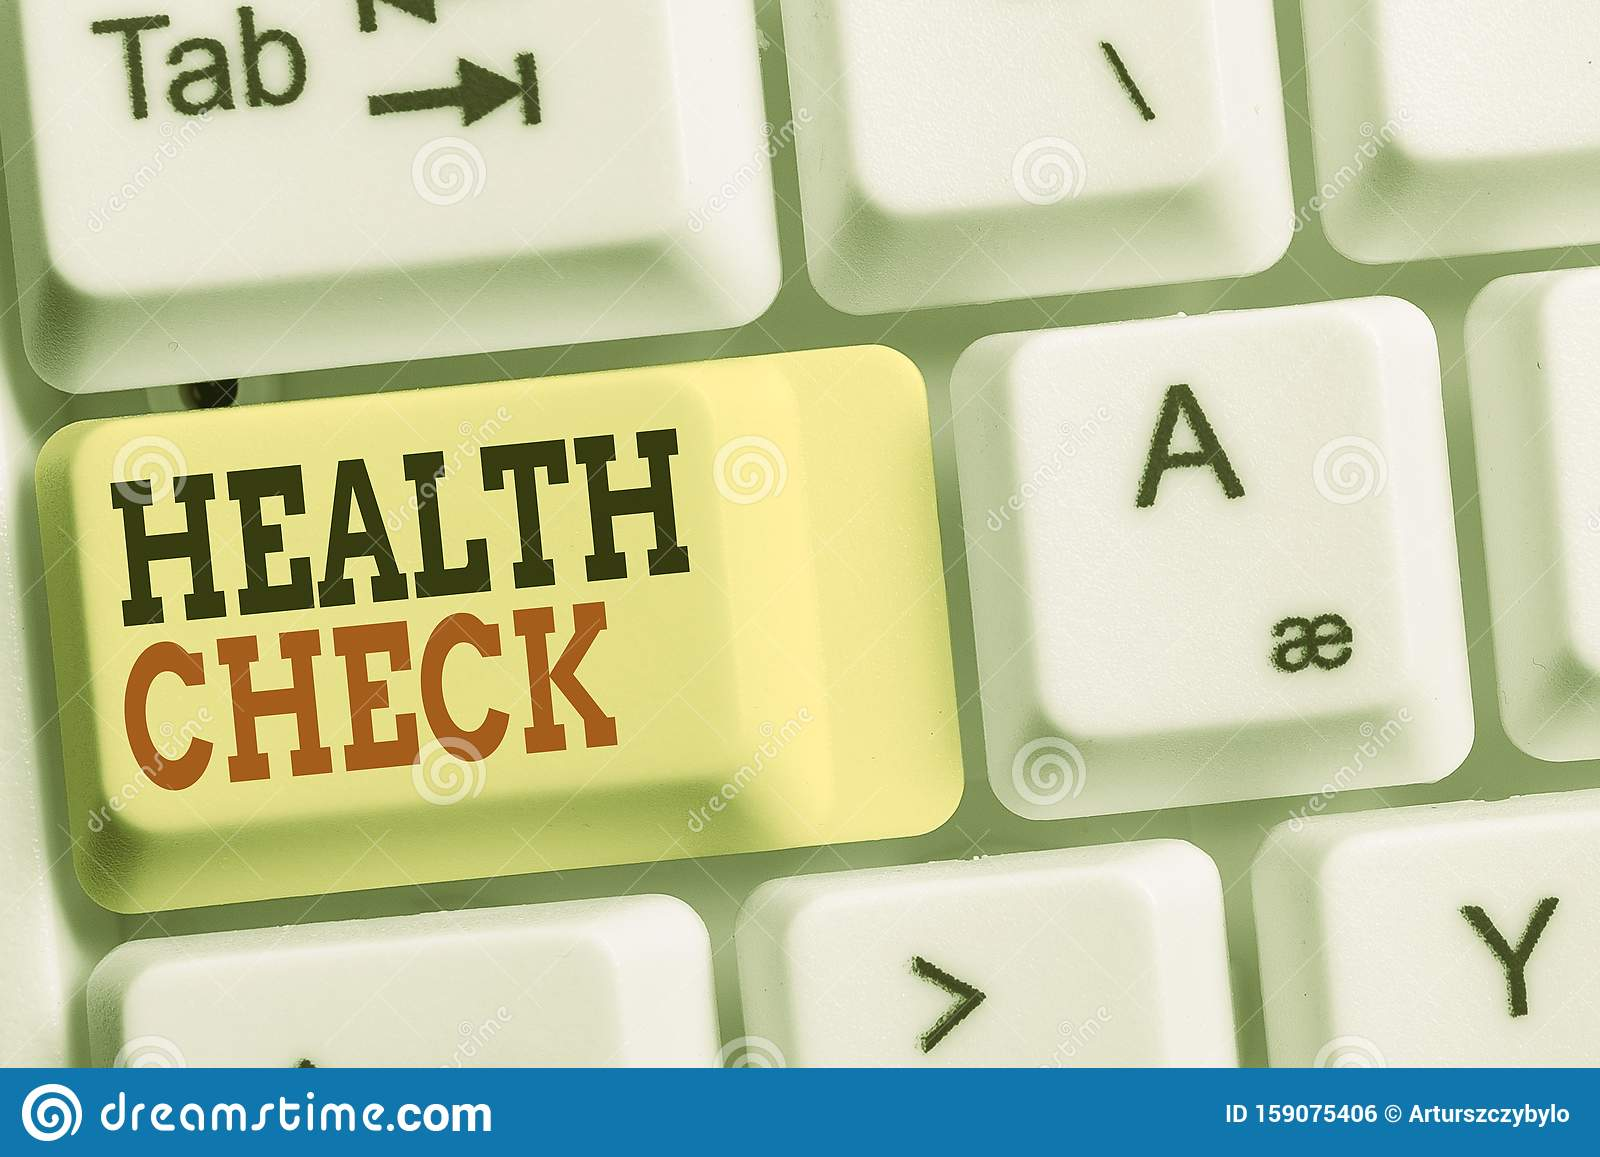 Handwriting Text Health Check Concept Meaning Medical